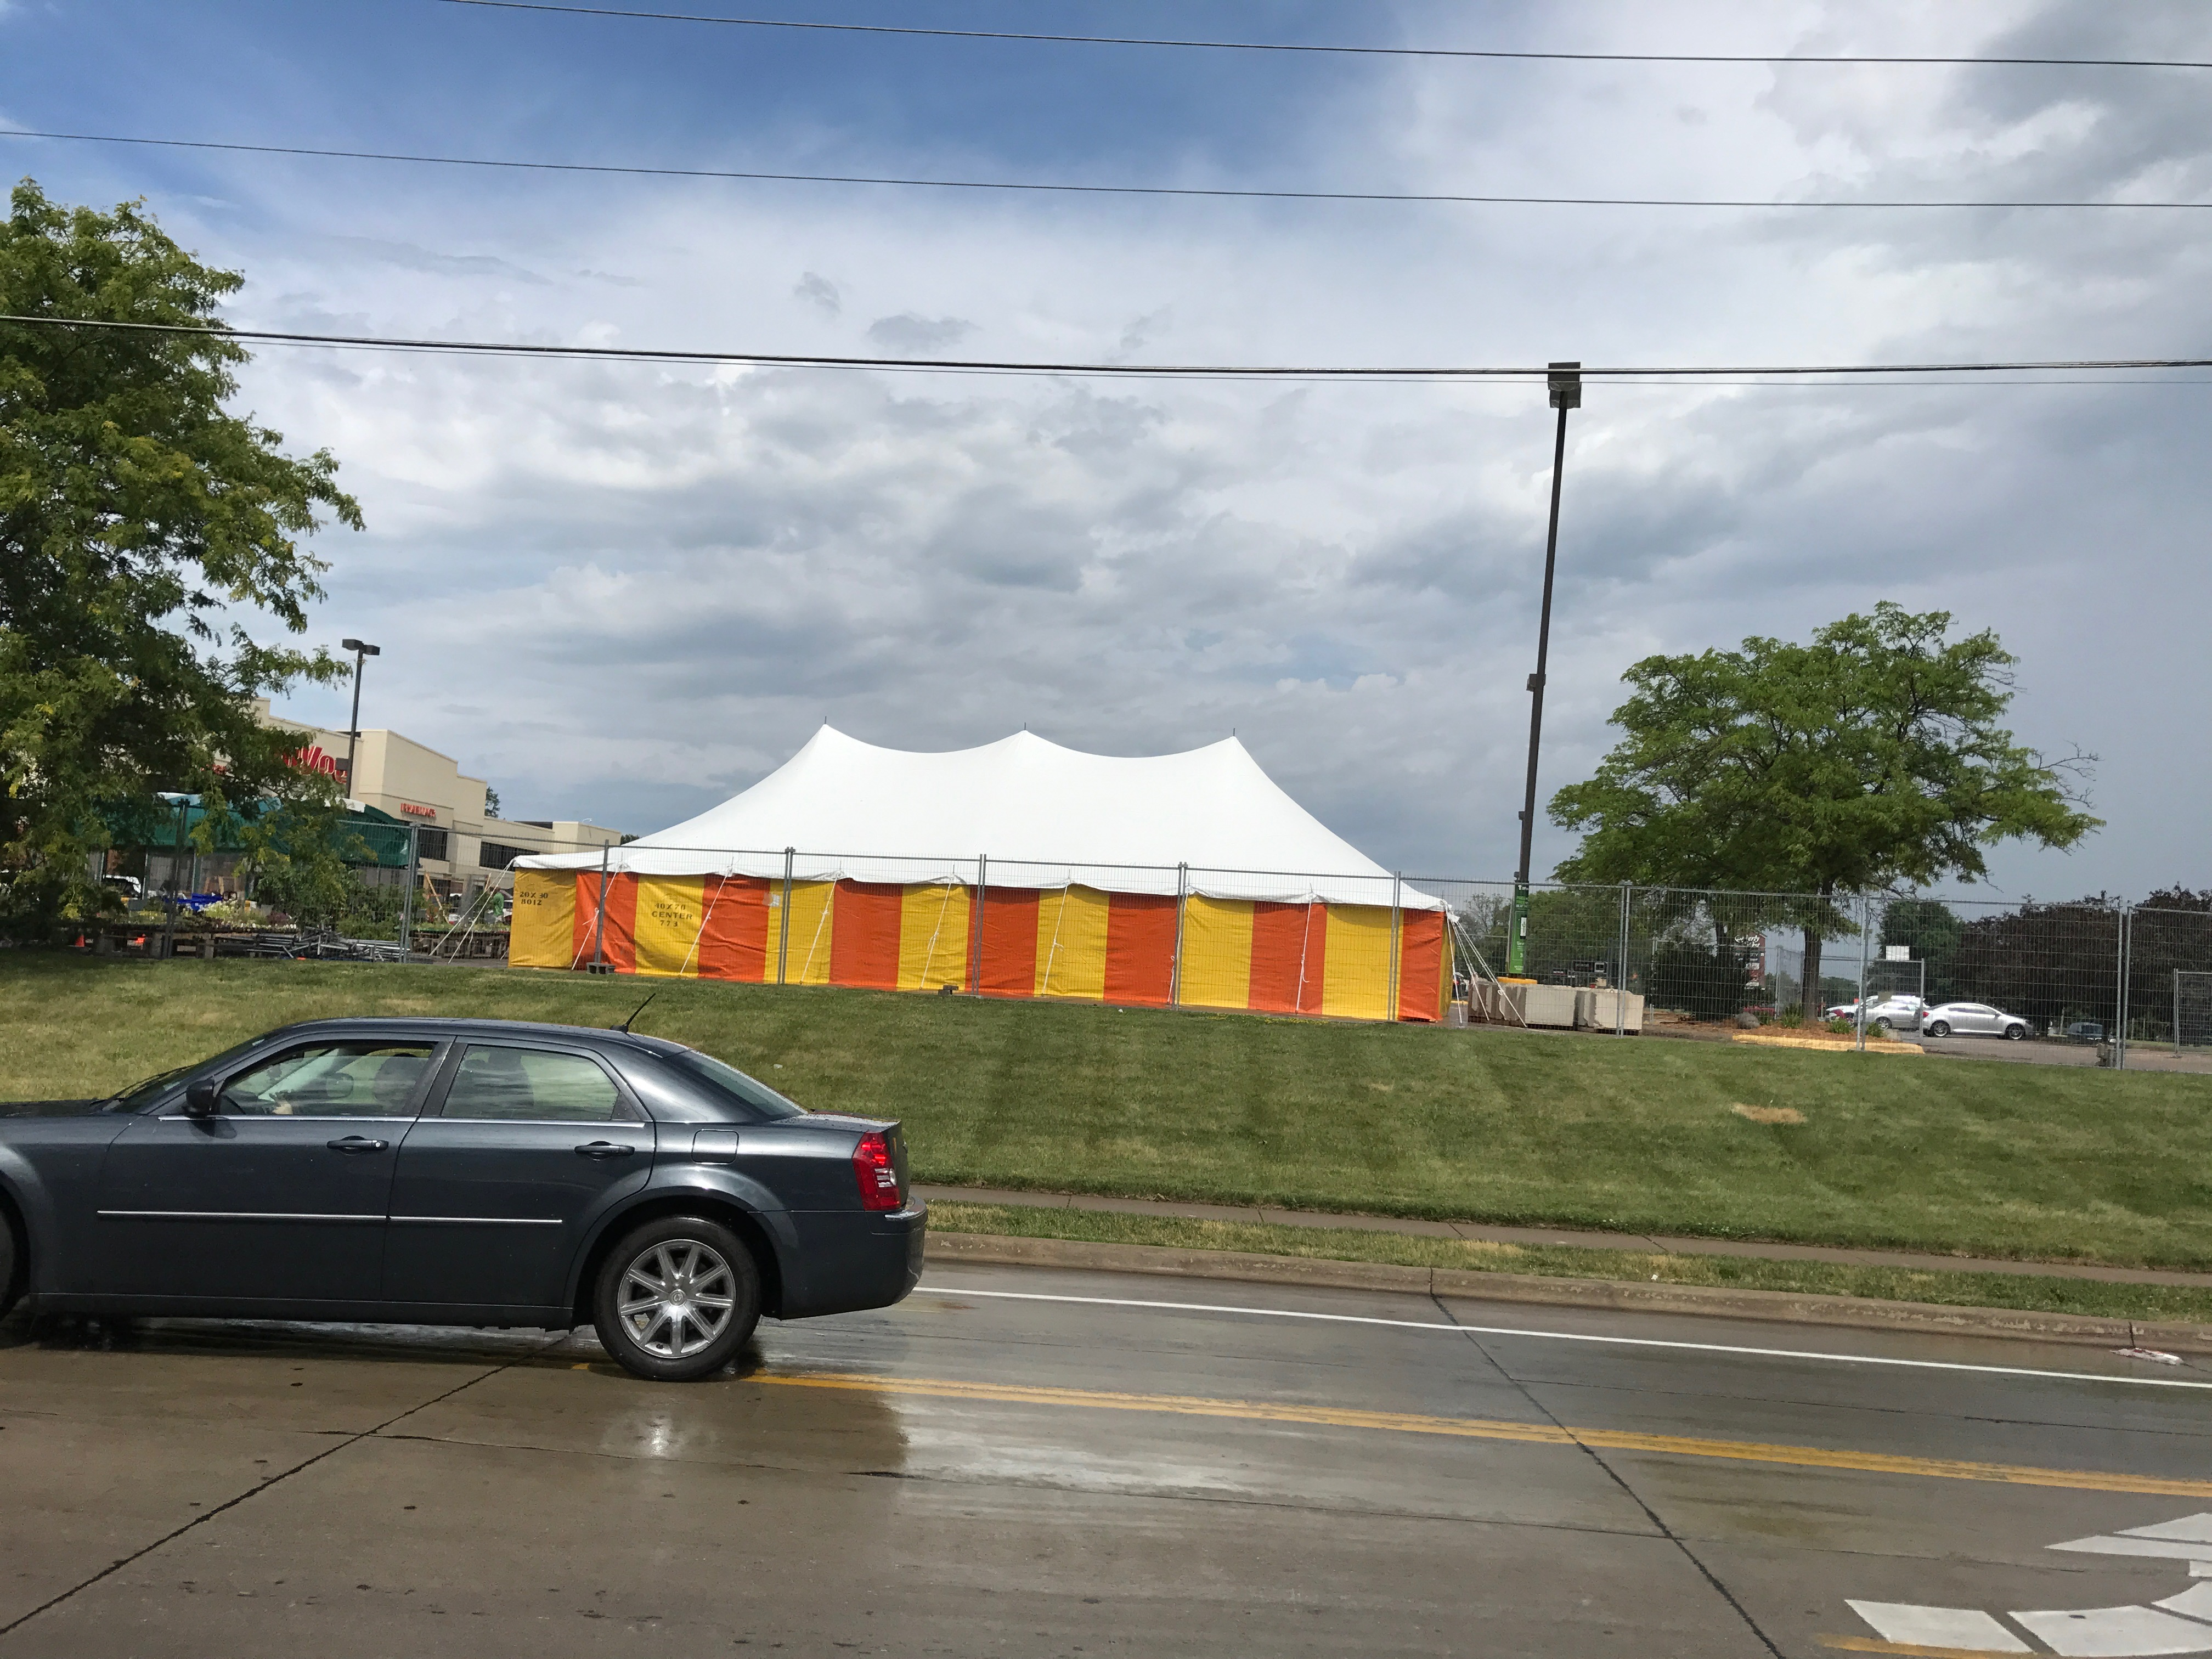 View from the road of our 30' x 60' rope and pole tent at Hy-Vee 1823 E Kimberly Rd in Davenport, Iowa with Yellow and Orange side walls